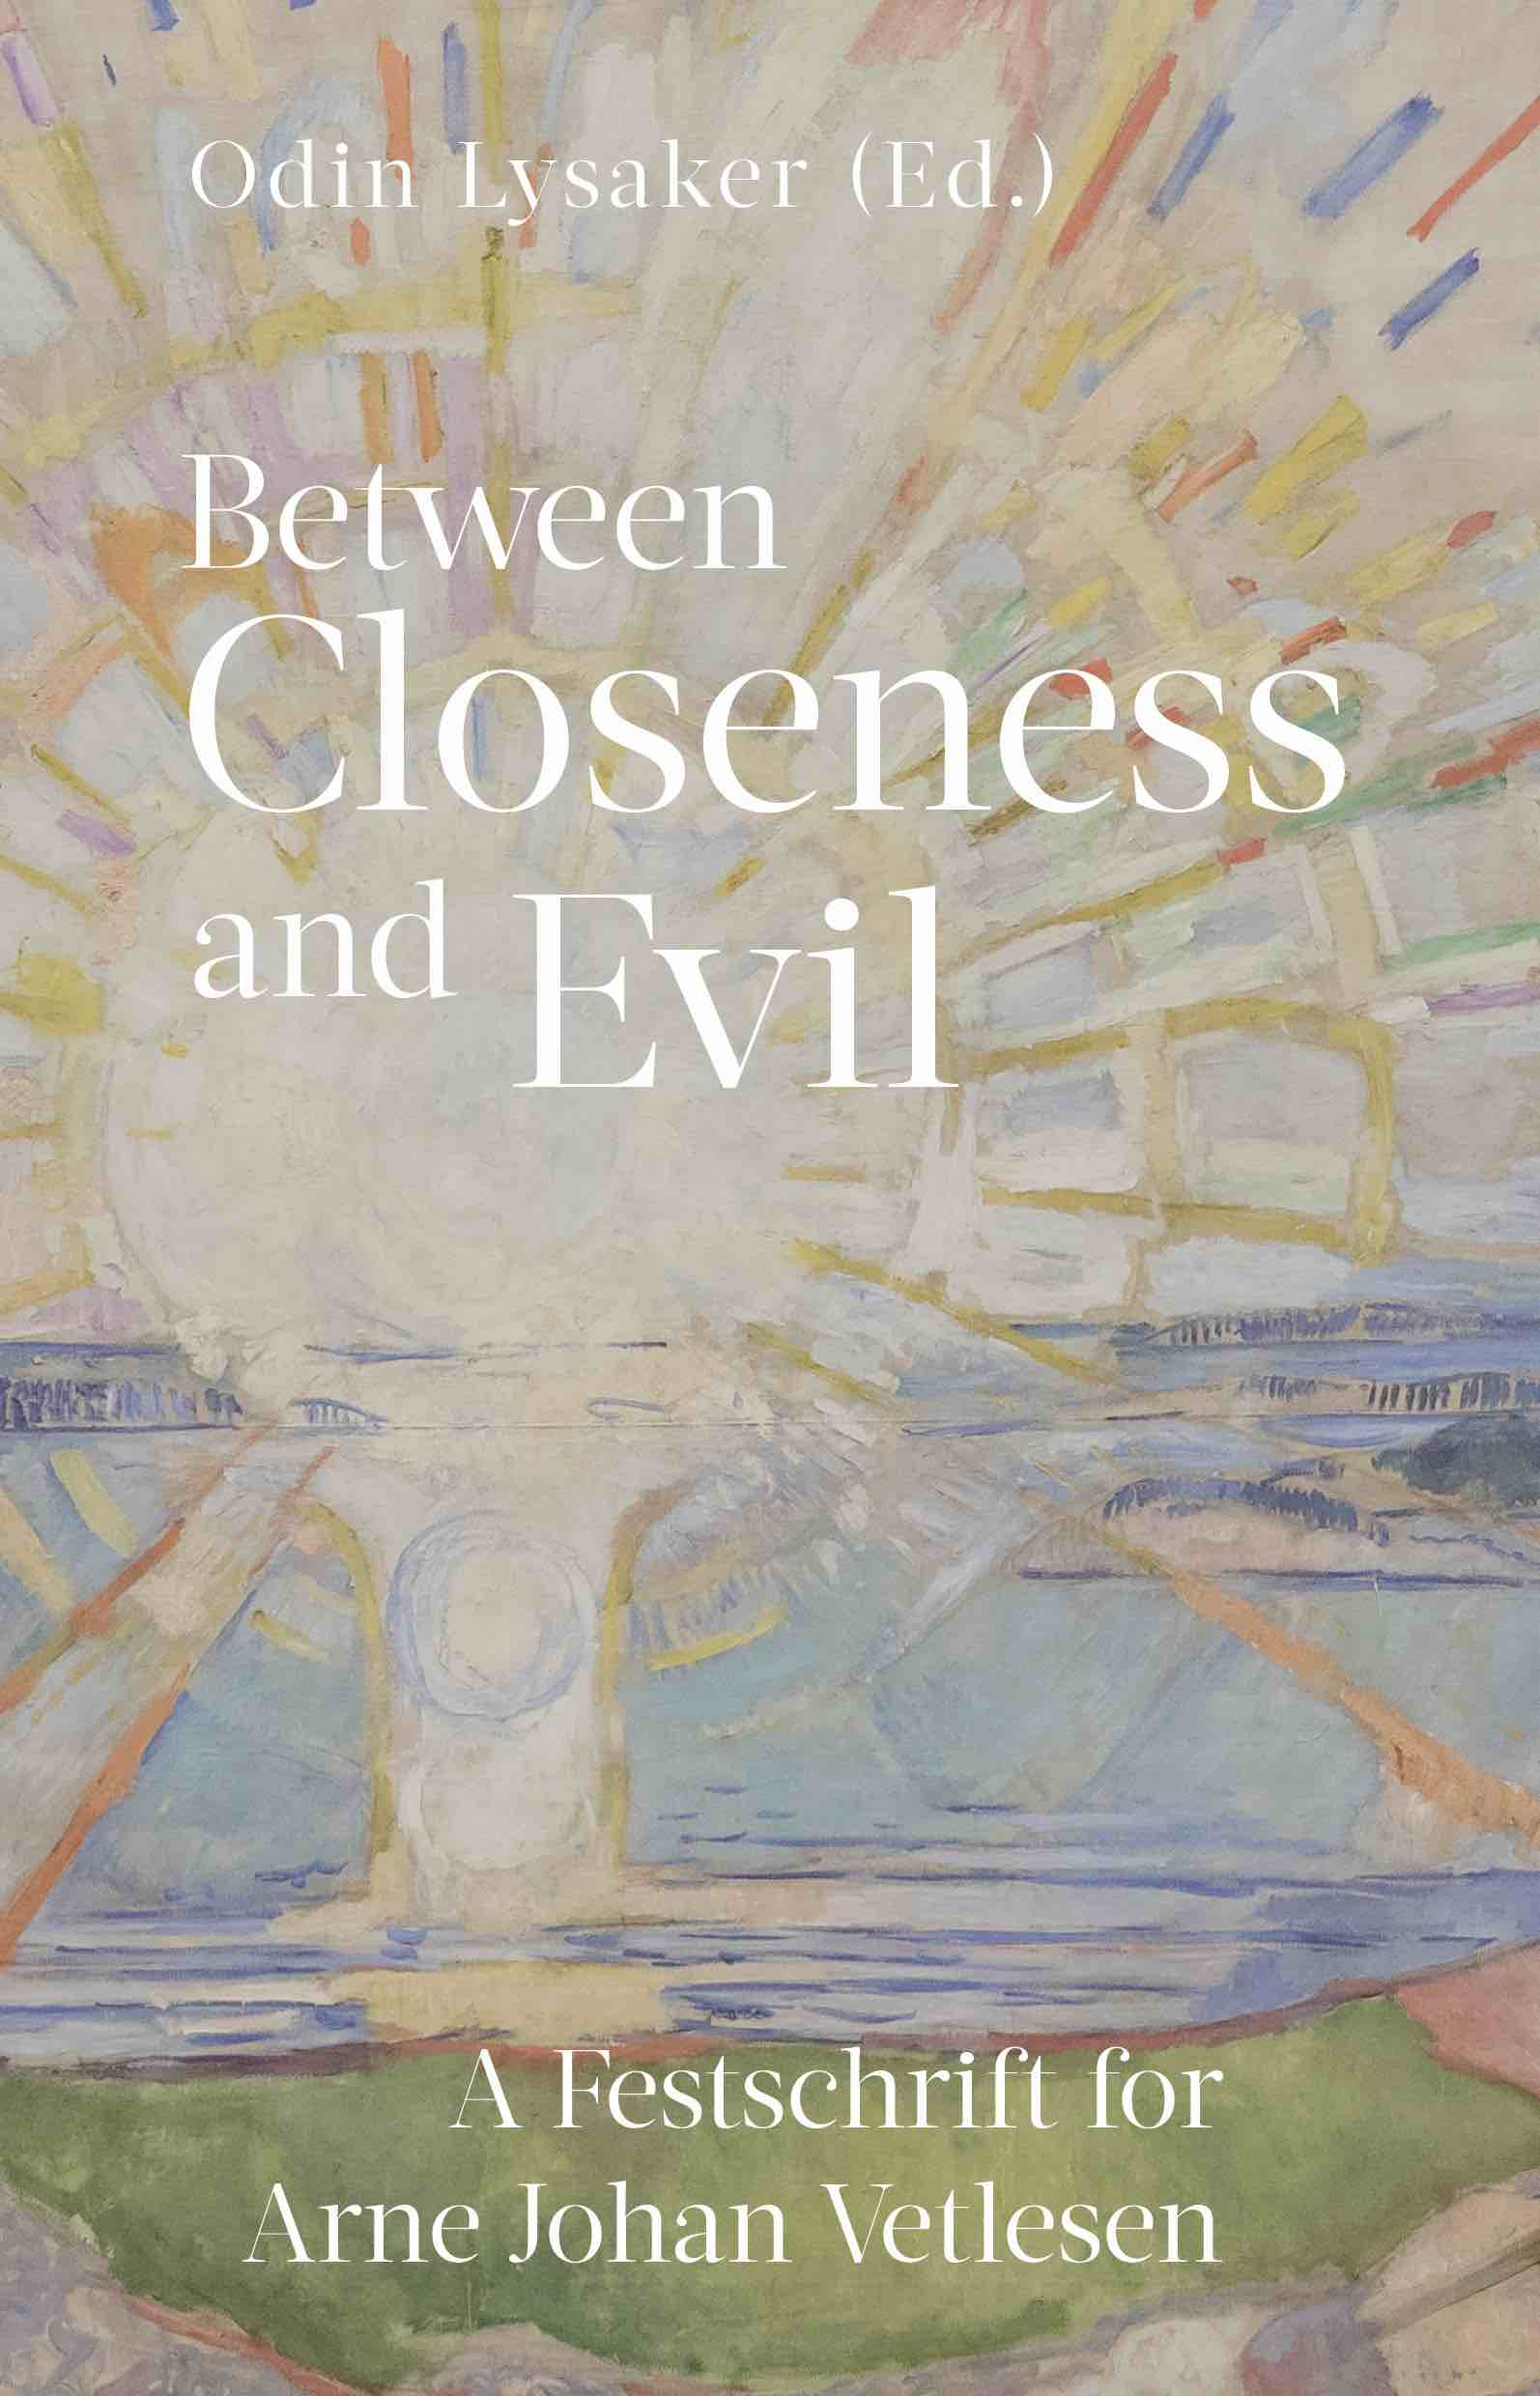 Between closeness and evil